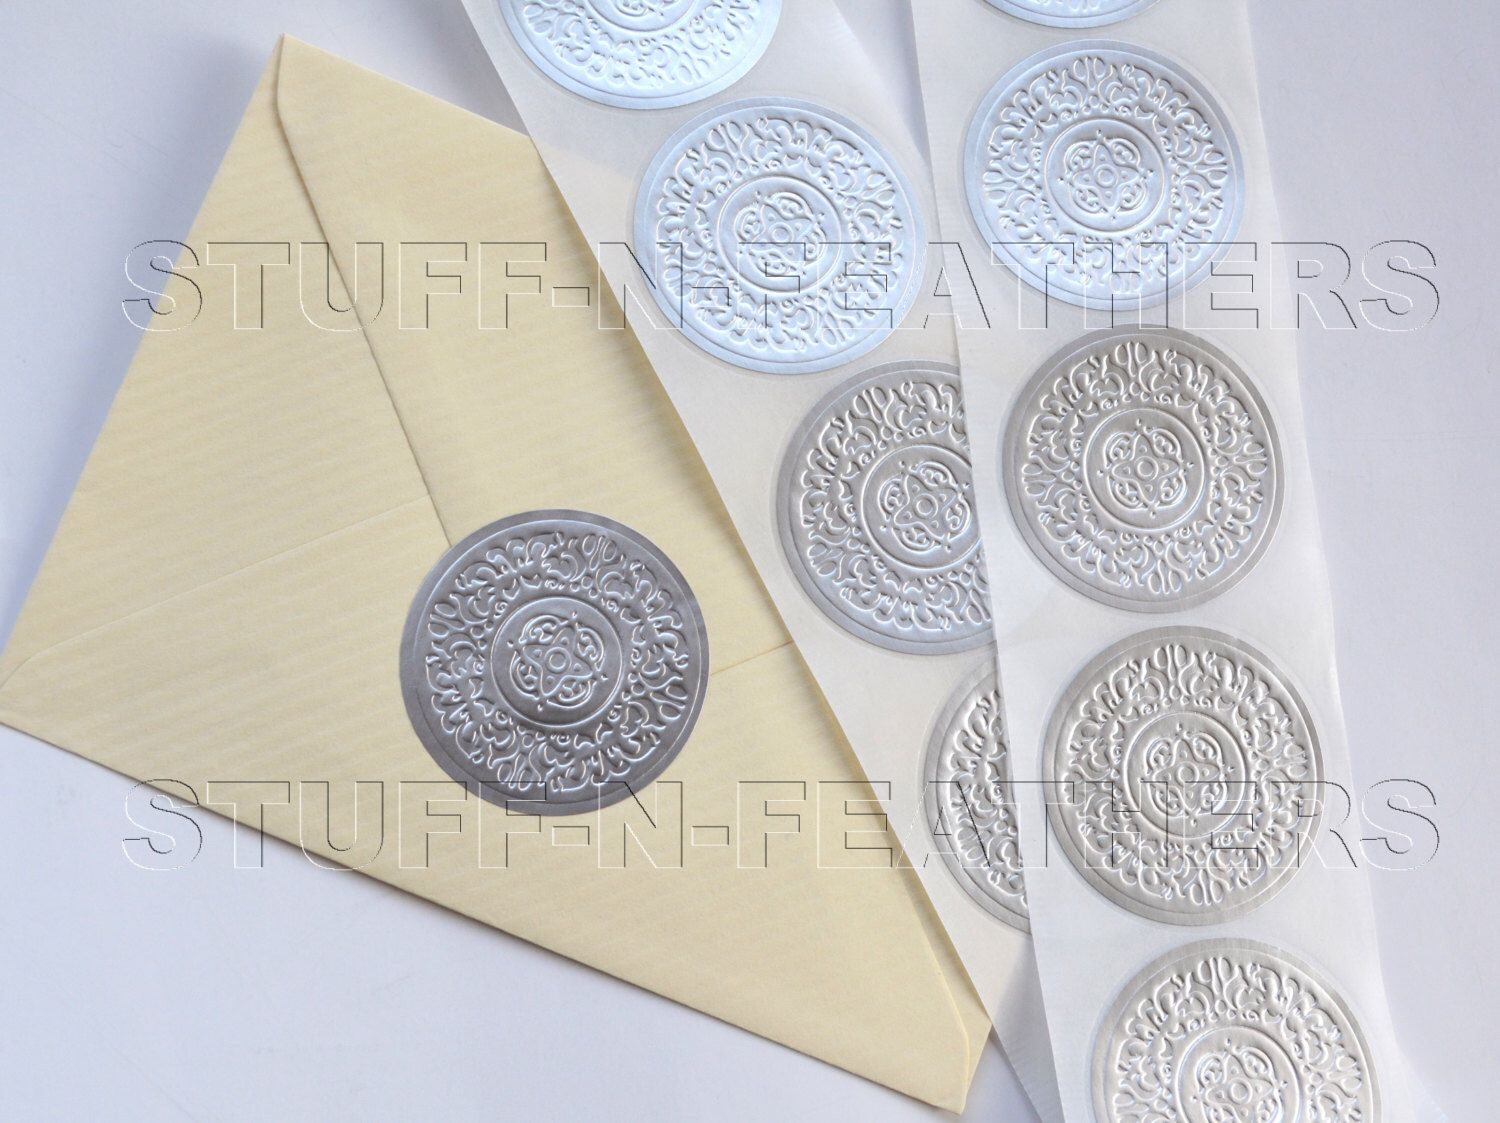 Pin by Stephanie Poon on Getting hitched   Wedding envelopes